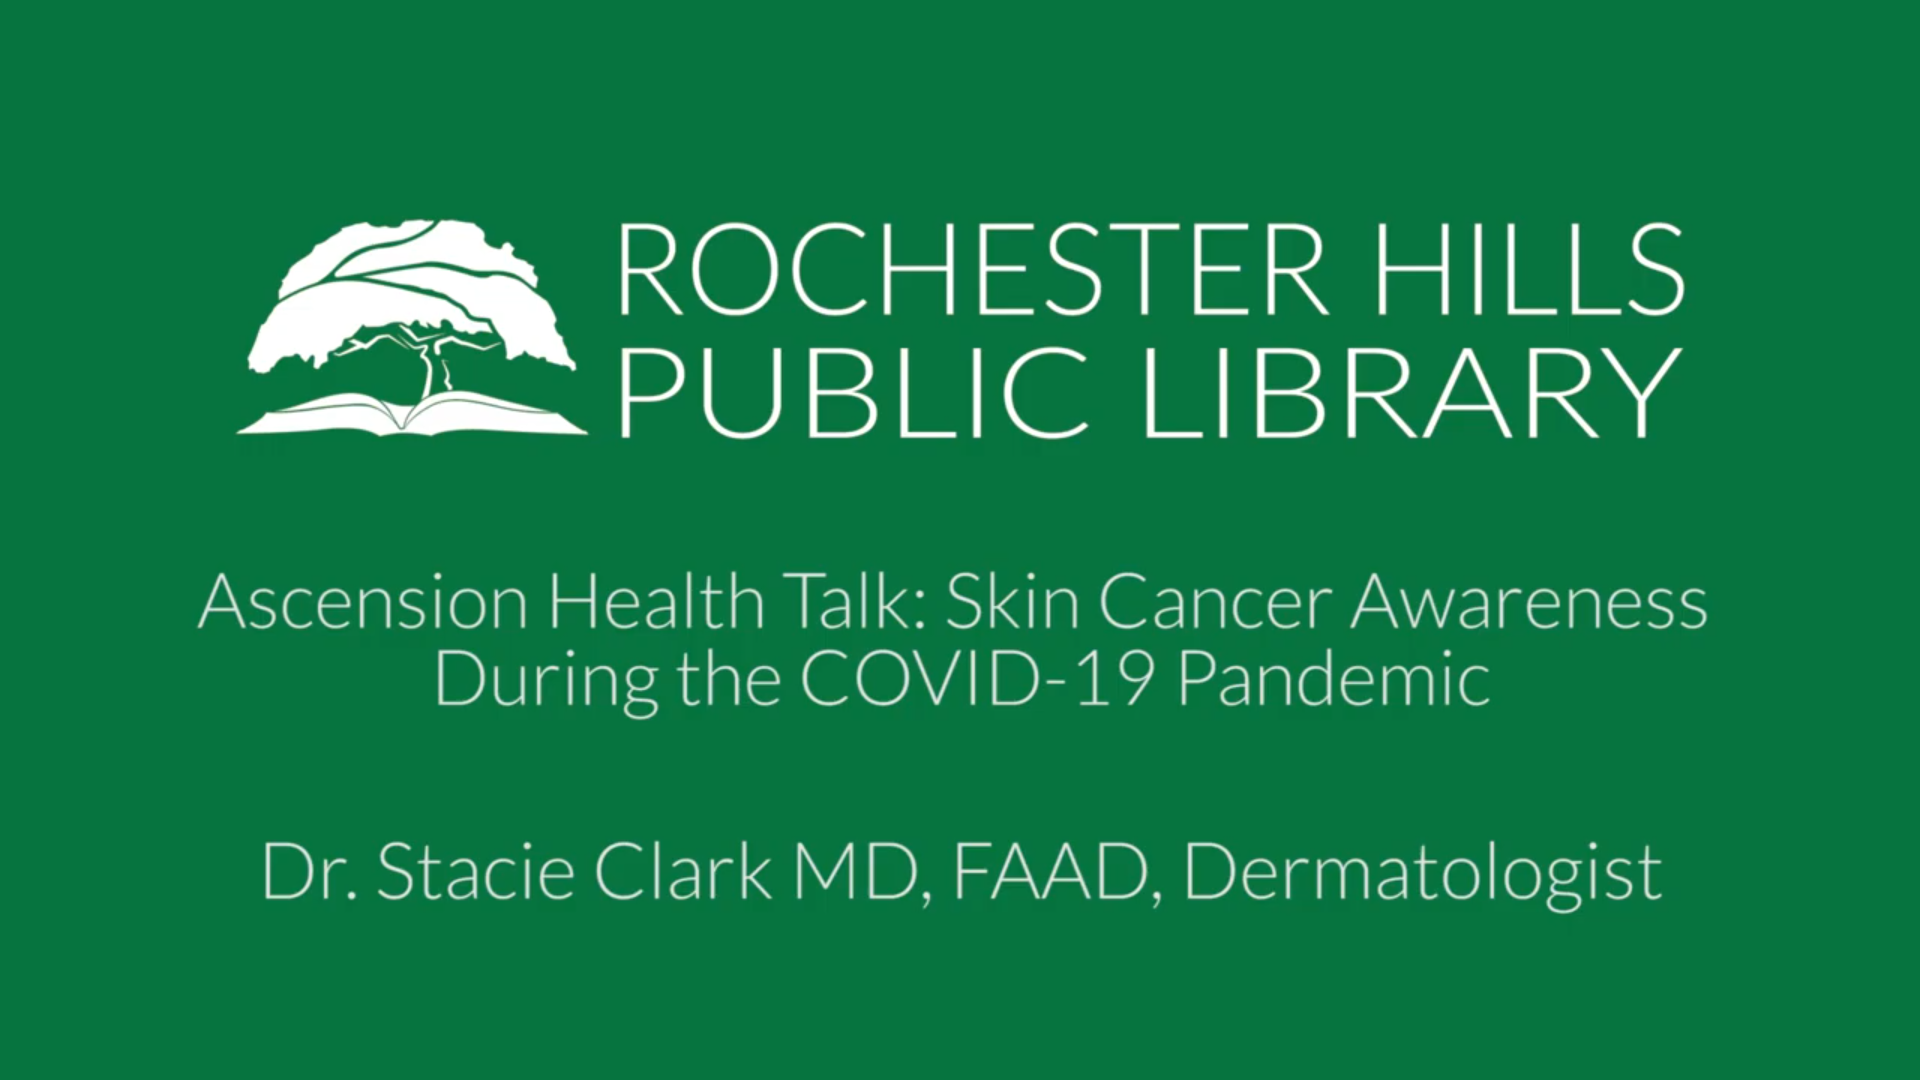 Ascension Health Talk: Skin Cancer Awareness During the COVID-19 Pandemic